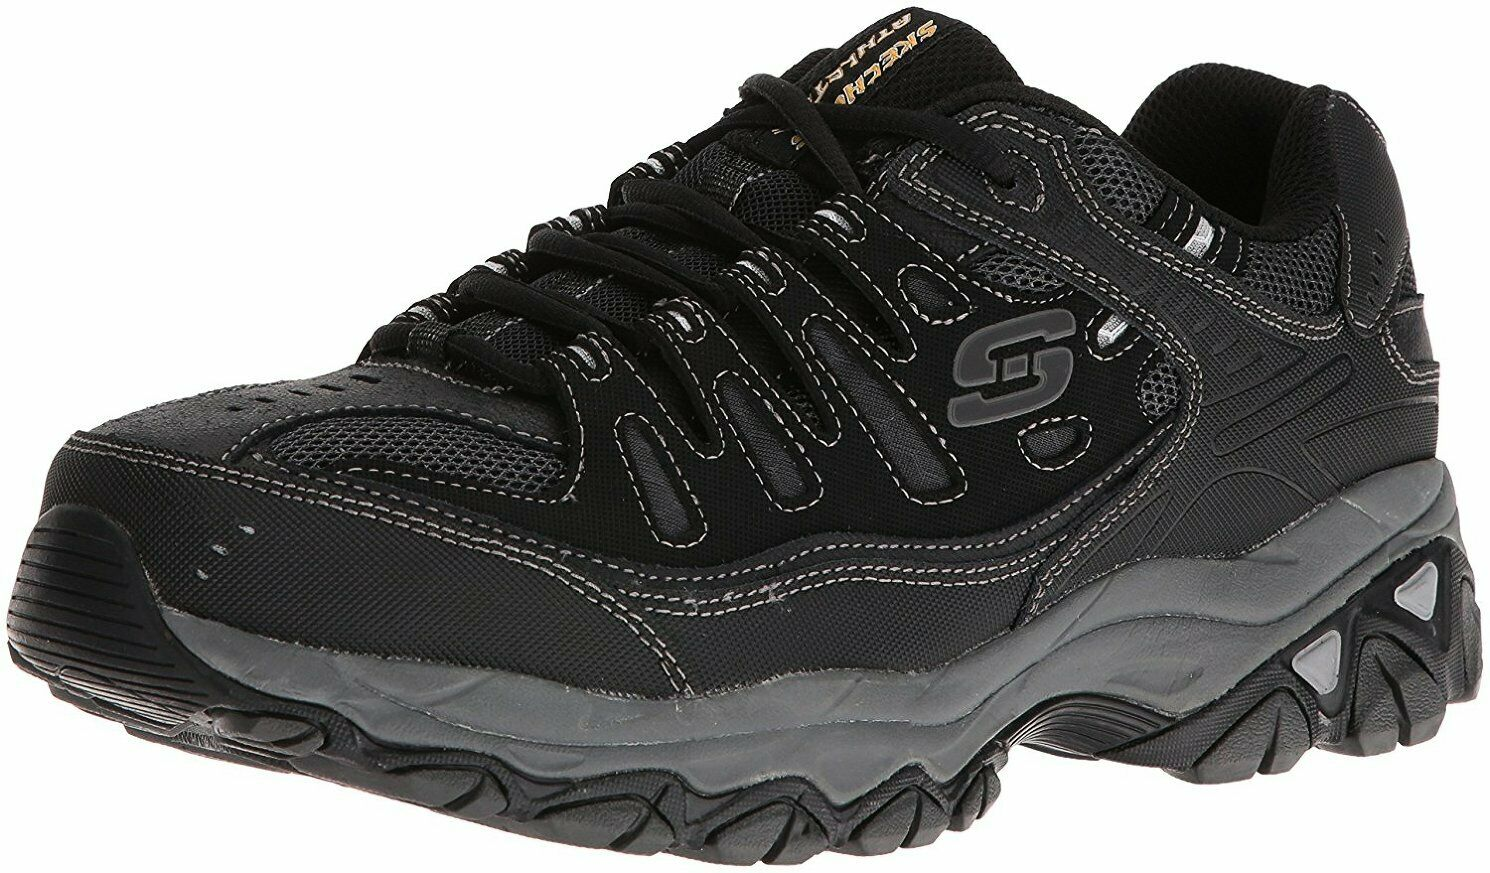 Skechers Skechers Skechers Uomo Afterburn Memory-Foam Lace-up scarpe da ginnastica - Choose SZ Coloree c0bc0c